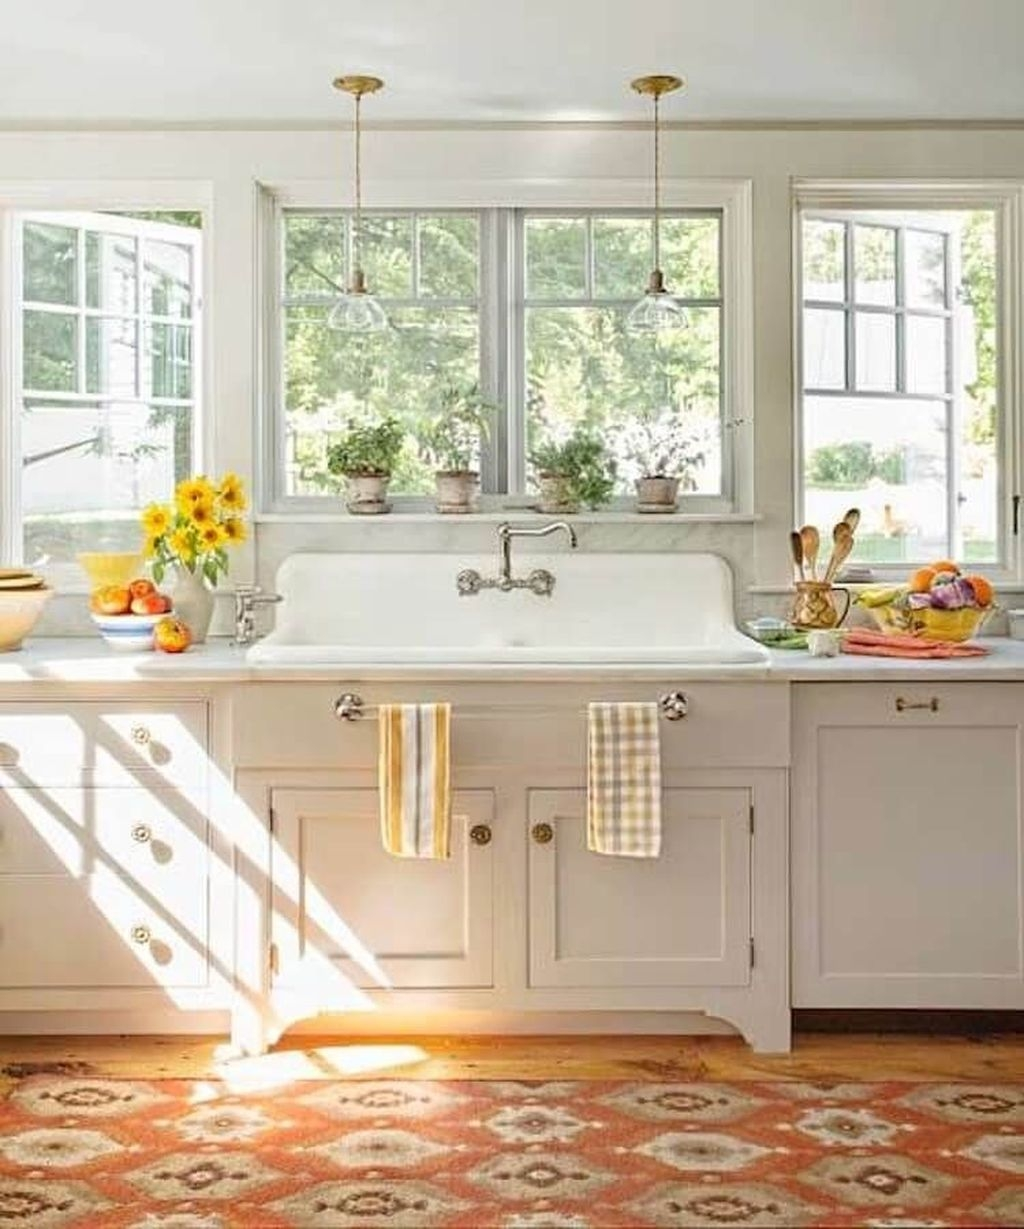 Outstanding Sink Ideas For Kitchen Home You Should Try33